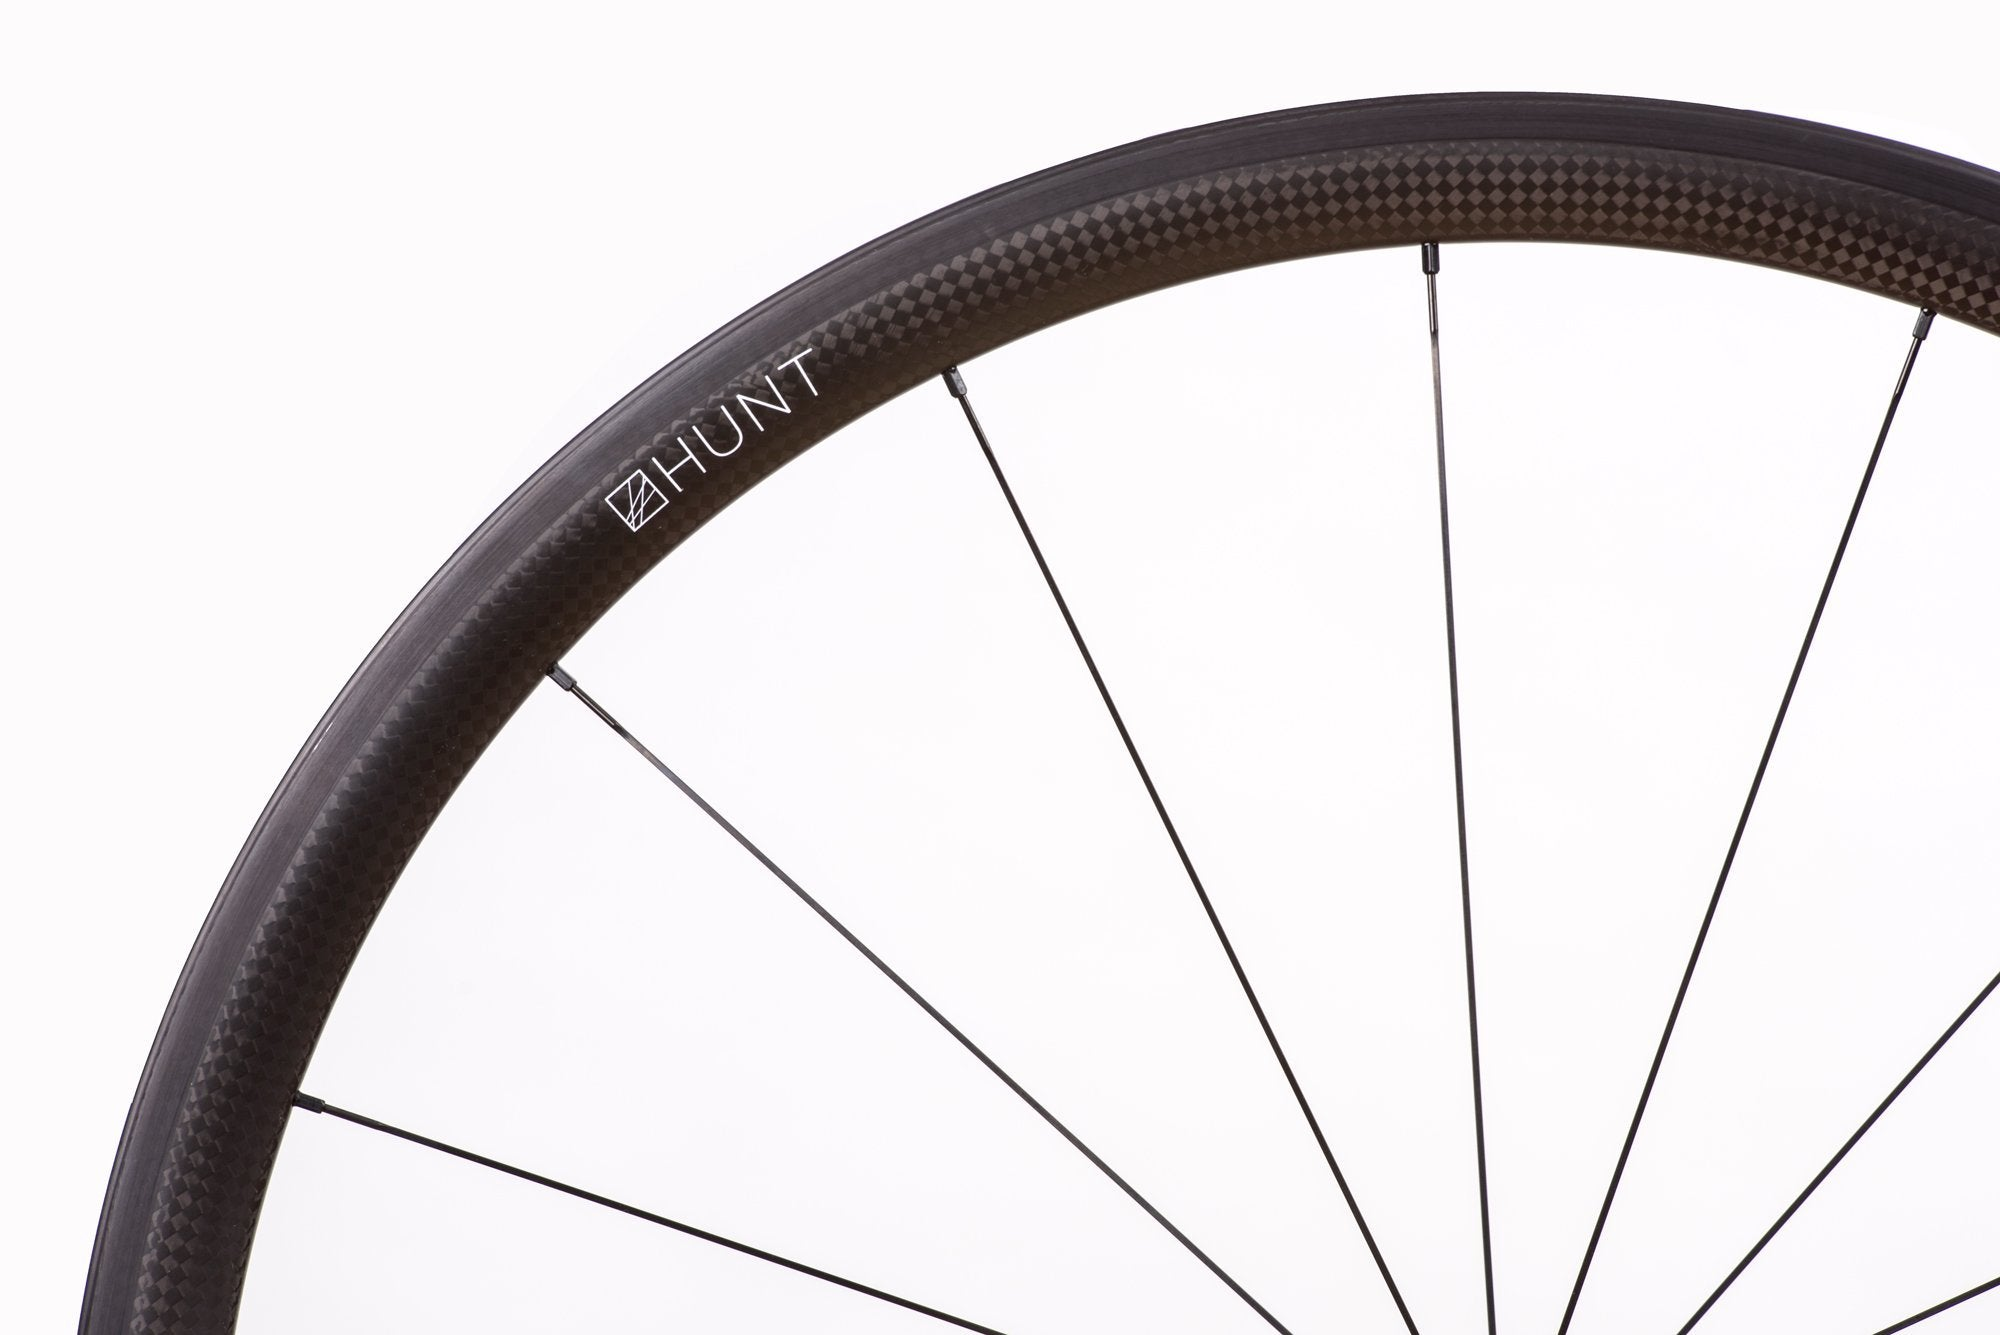 <h1>Spokes</h1><i>We chose the top-of-the-range Pillar Spoke Megalite Bladed models. These butted blade aero spokes are lighter and provide a greater degree of elasticity to maintain tensions longer and add fatigue resistance. PSR spokes feature the 2.2 width at the head providing more material in this high stress area. Nipples are 14mm alloy, anodized and come with a hex head so you can achieve precise tensioning. Combining components well is key which is why all Hunt wheels are hand-built.</i>